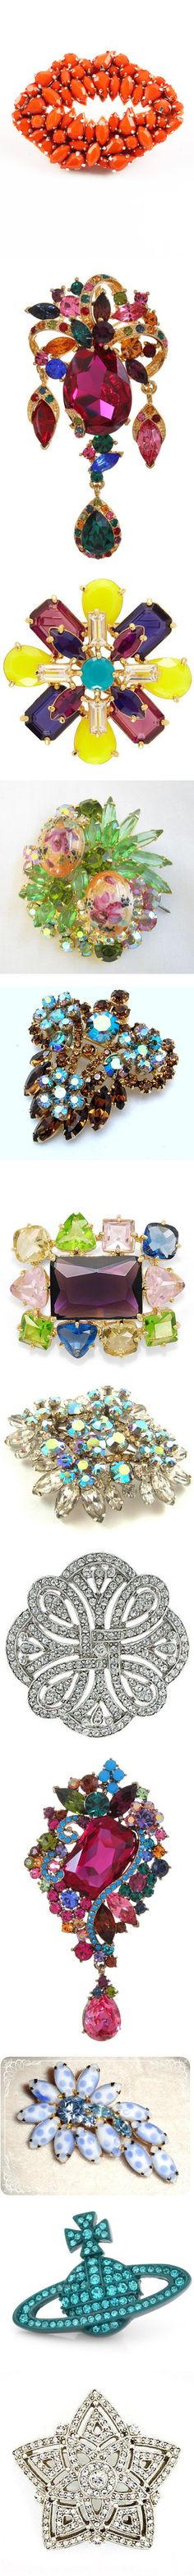 """Crystal Brooches Between $50- $100"" by dana-forlano on Polyvore"